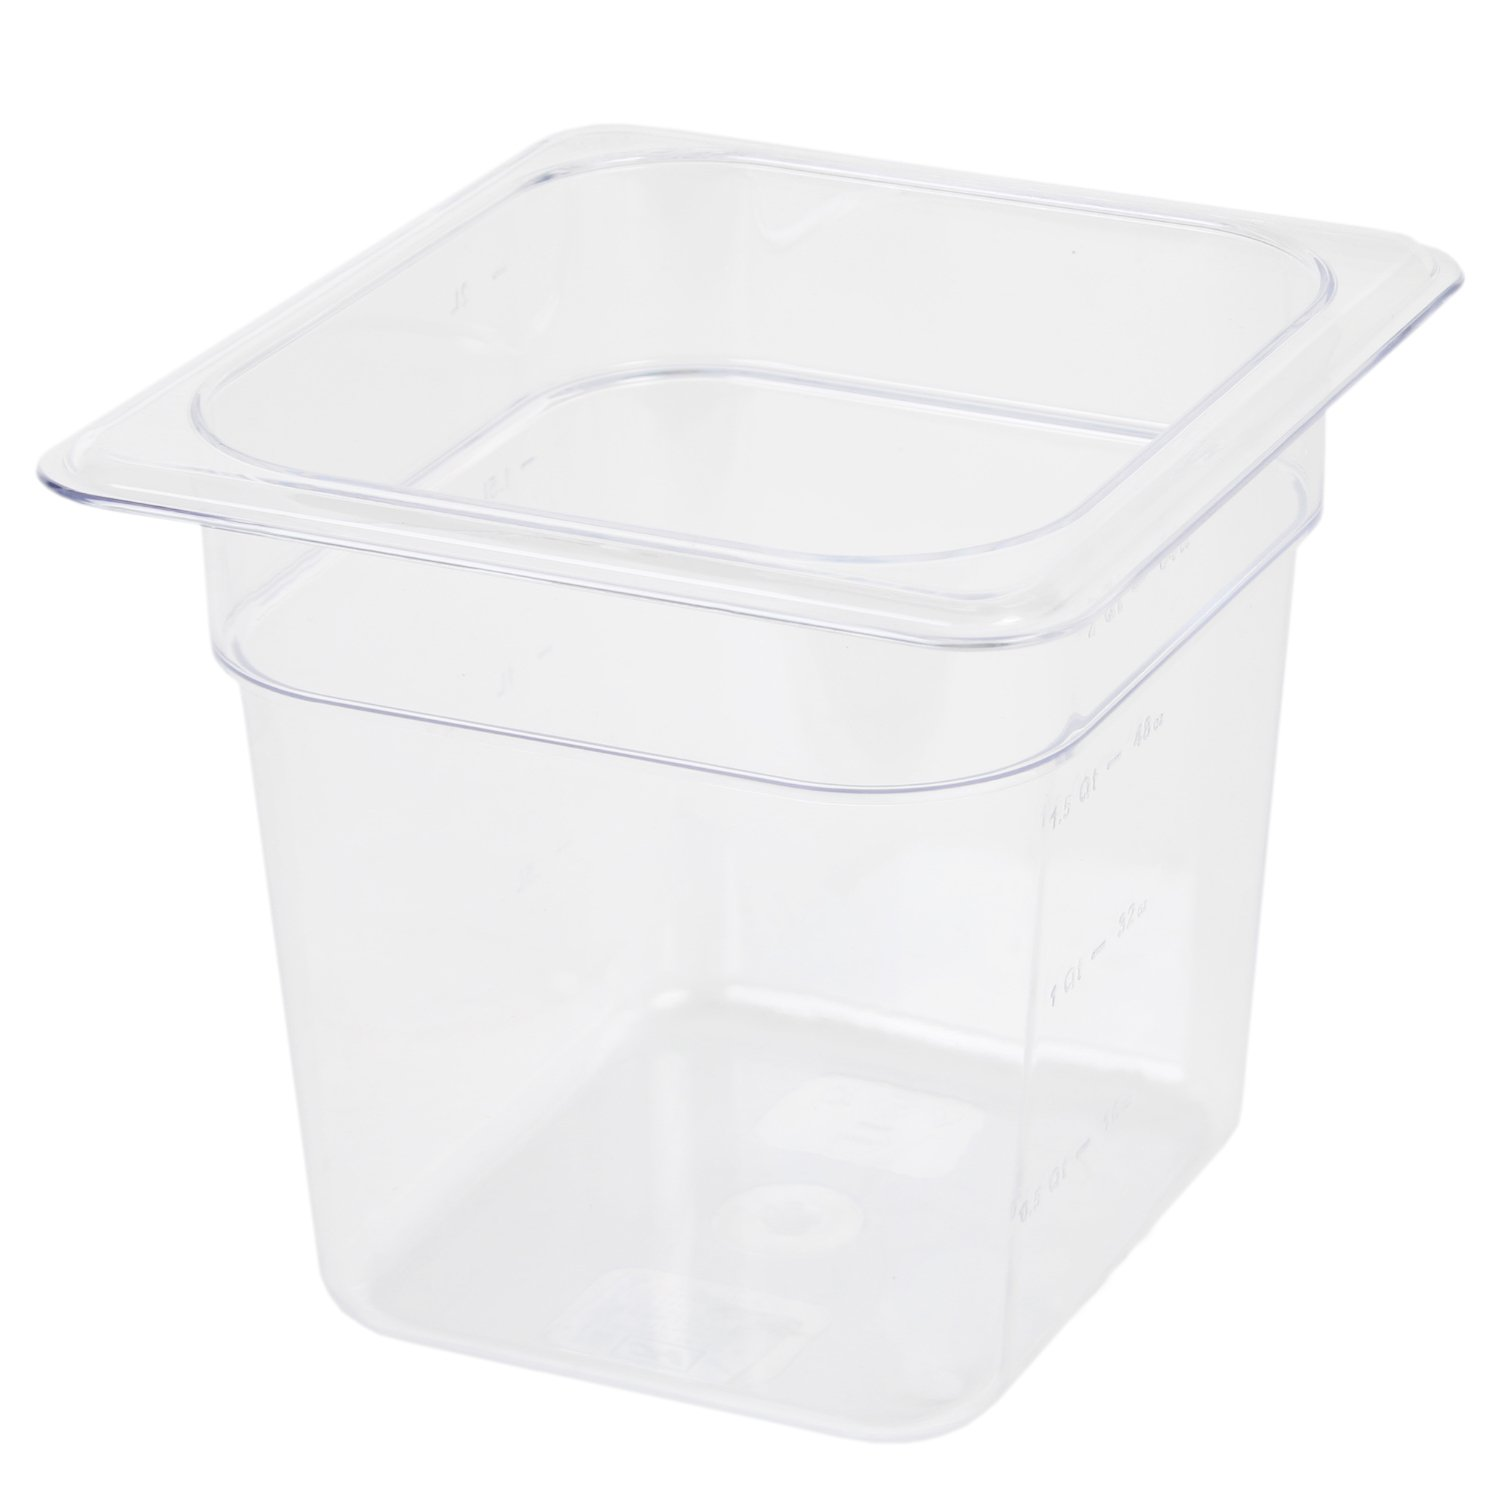 Excellante 849851007260 Deep Polycarbonate Food Pan, 6